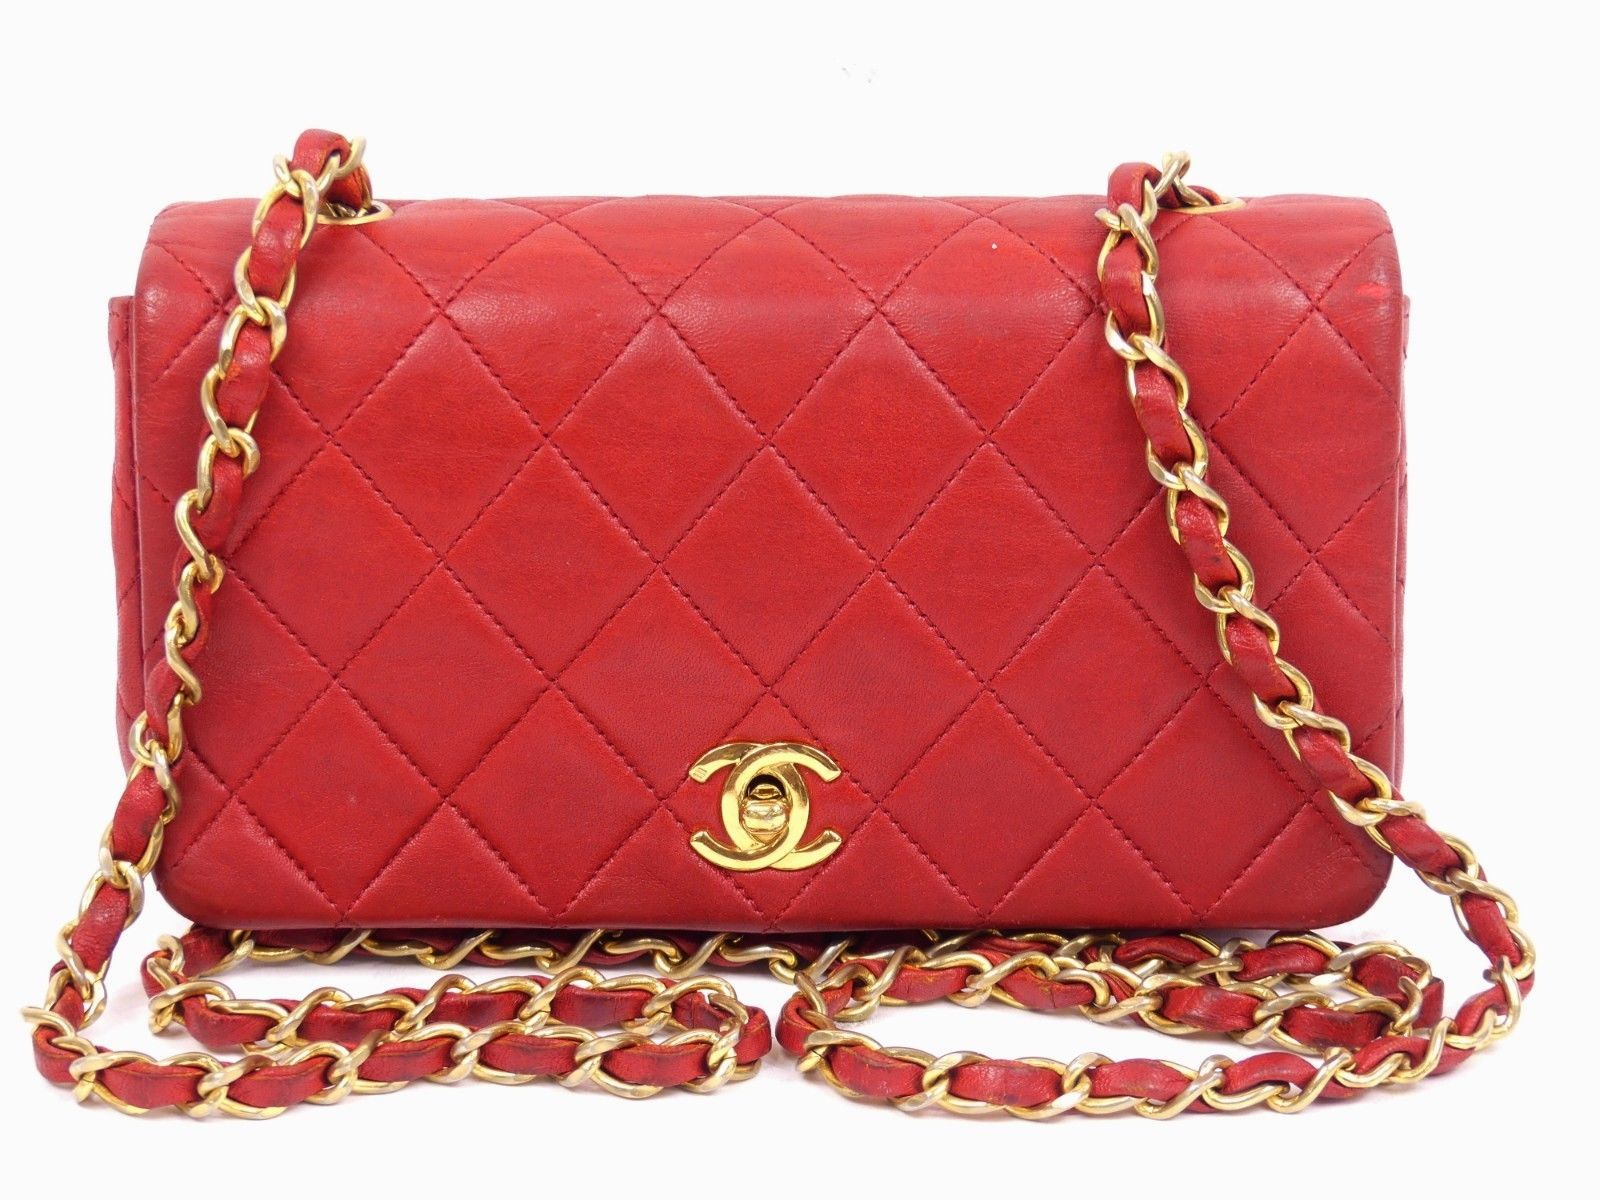 ebcca1eb370c rk331 Auth CHANEL Red Quilted Lambskin Leather CC Lock Mini Chain Shoulder  Bag $405.0